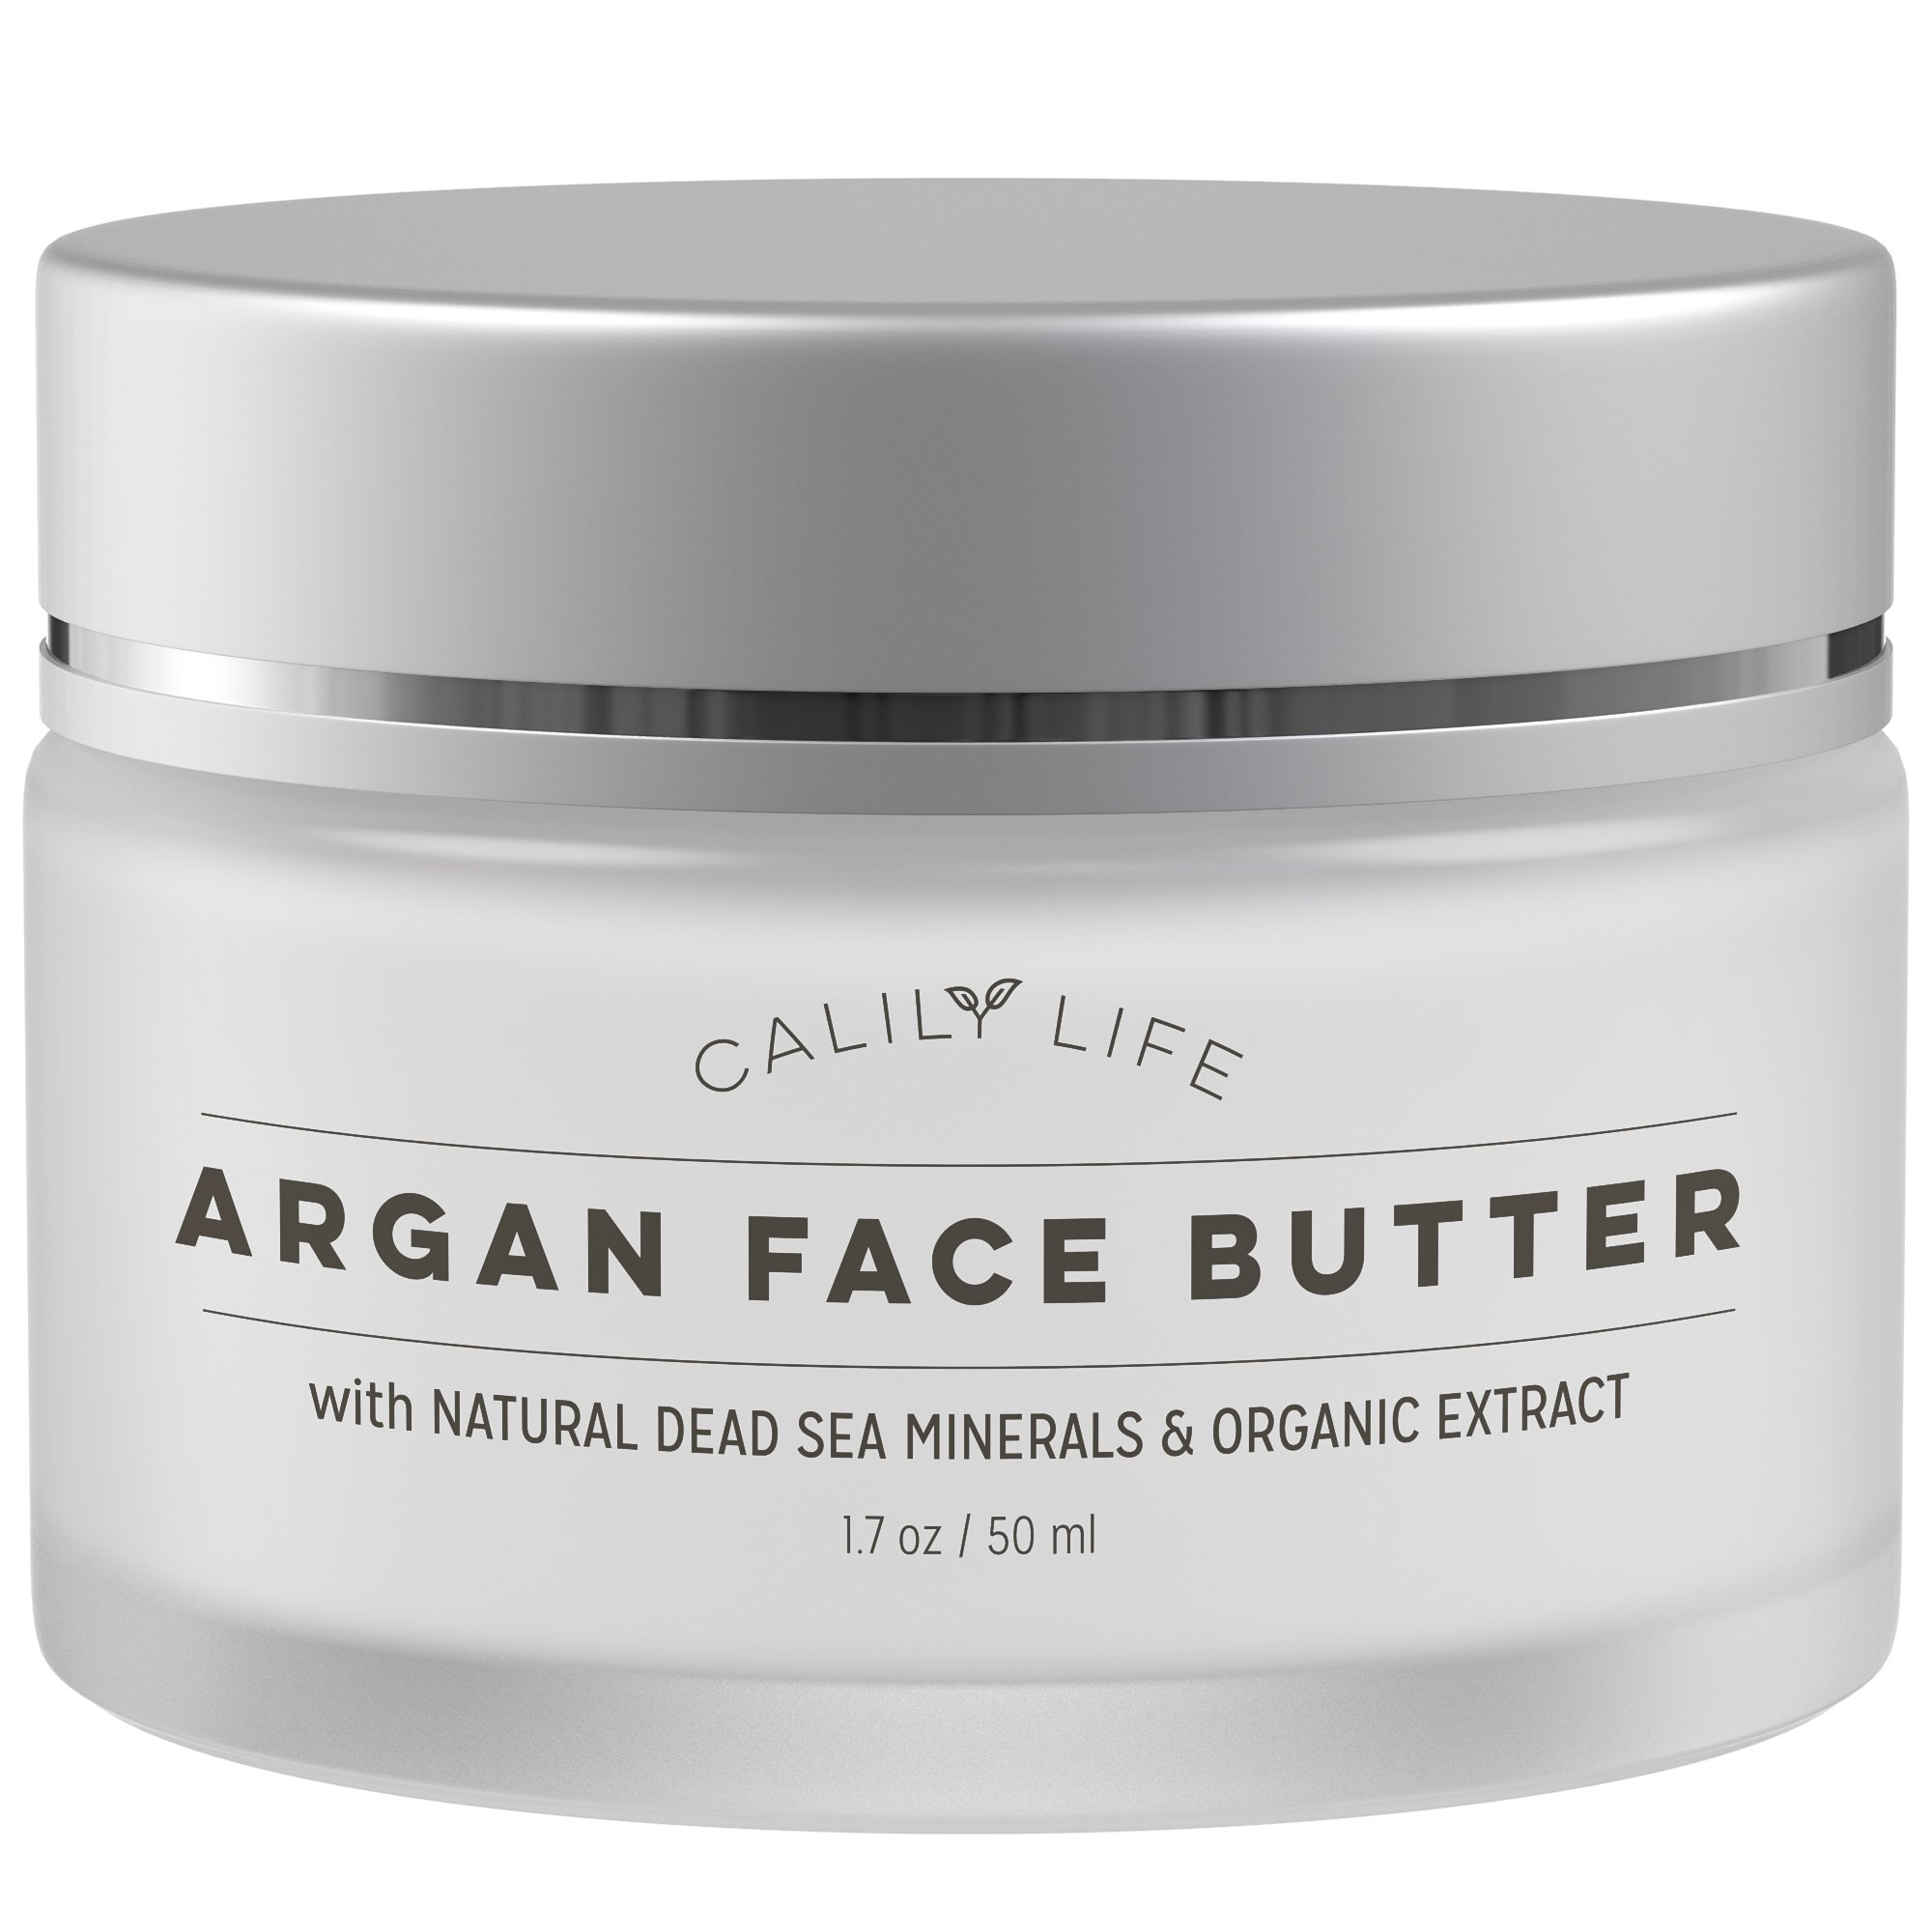 Calily Life Organic Argan Face Cream with Dead Sea Minerals, 1. 7 Oz. – Restores, Smooths, Moisturizes and Regenerates - Powerful Hydration - Combats Wrinkles and Aging - [ENHANCED]